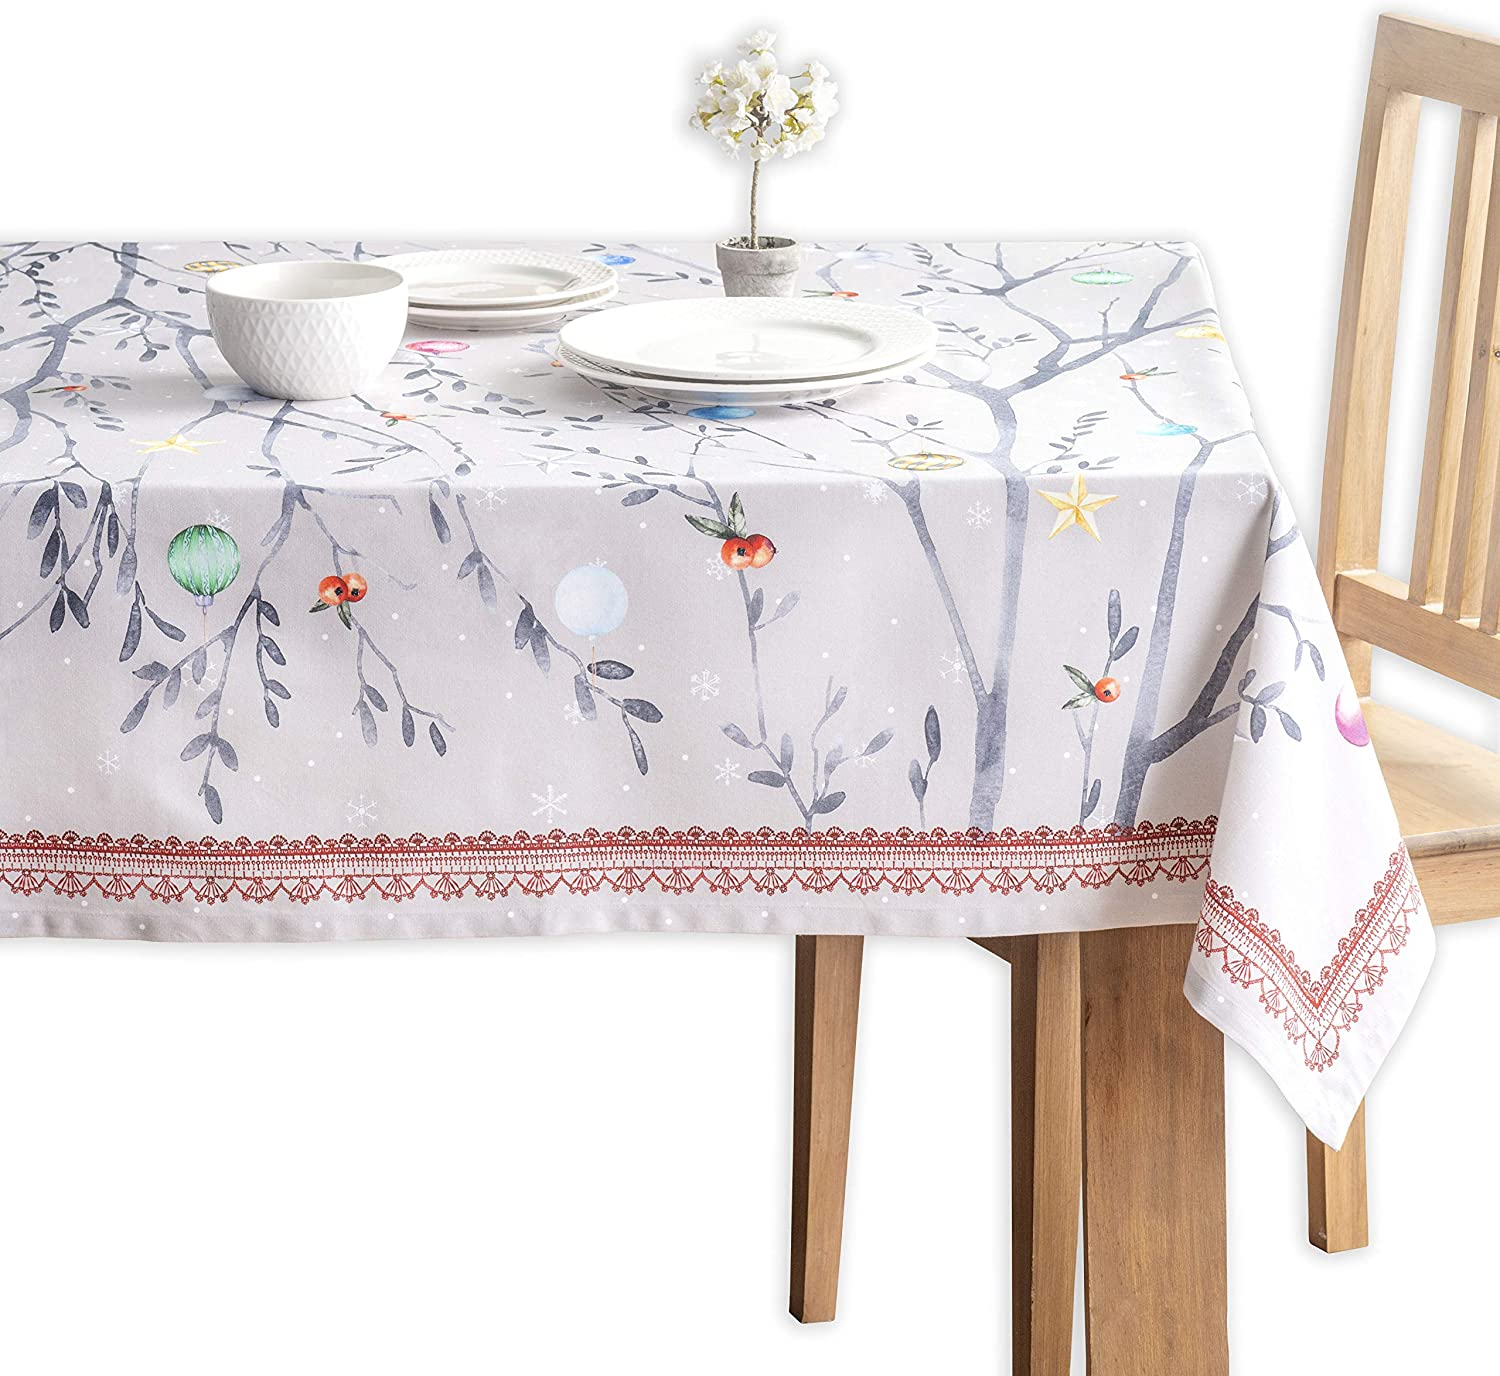 Maison d' Hermine Fairy Christmas 100% Cotton Tablecloth for Kitchen Dinning Tabletop Decoration Parties Weddings Thanksgiving Christmas (Rectangle, 60 Inch by 120 Inch)